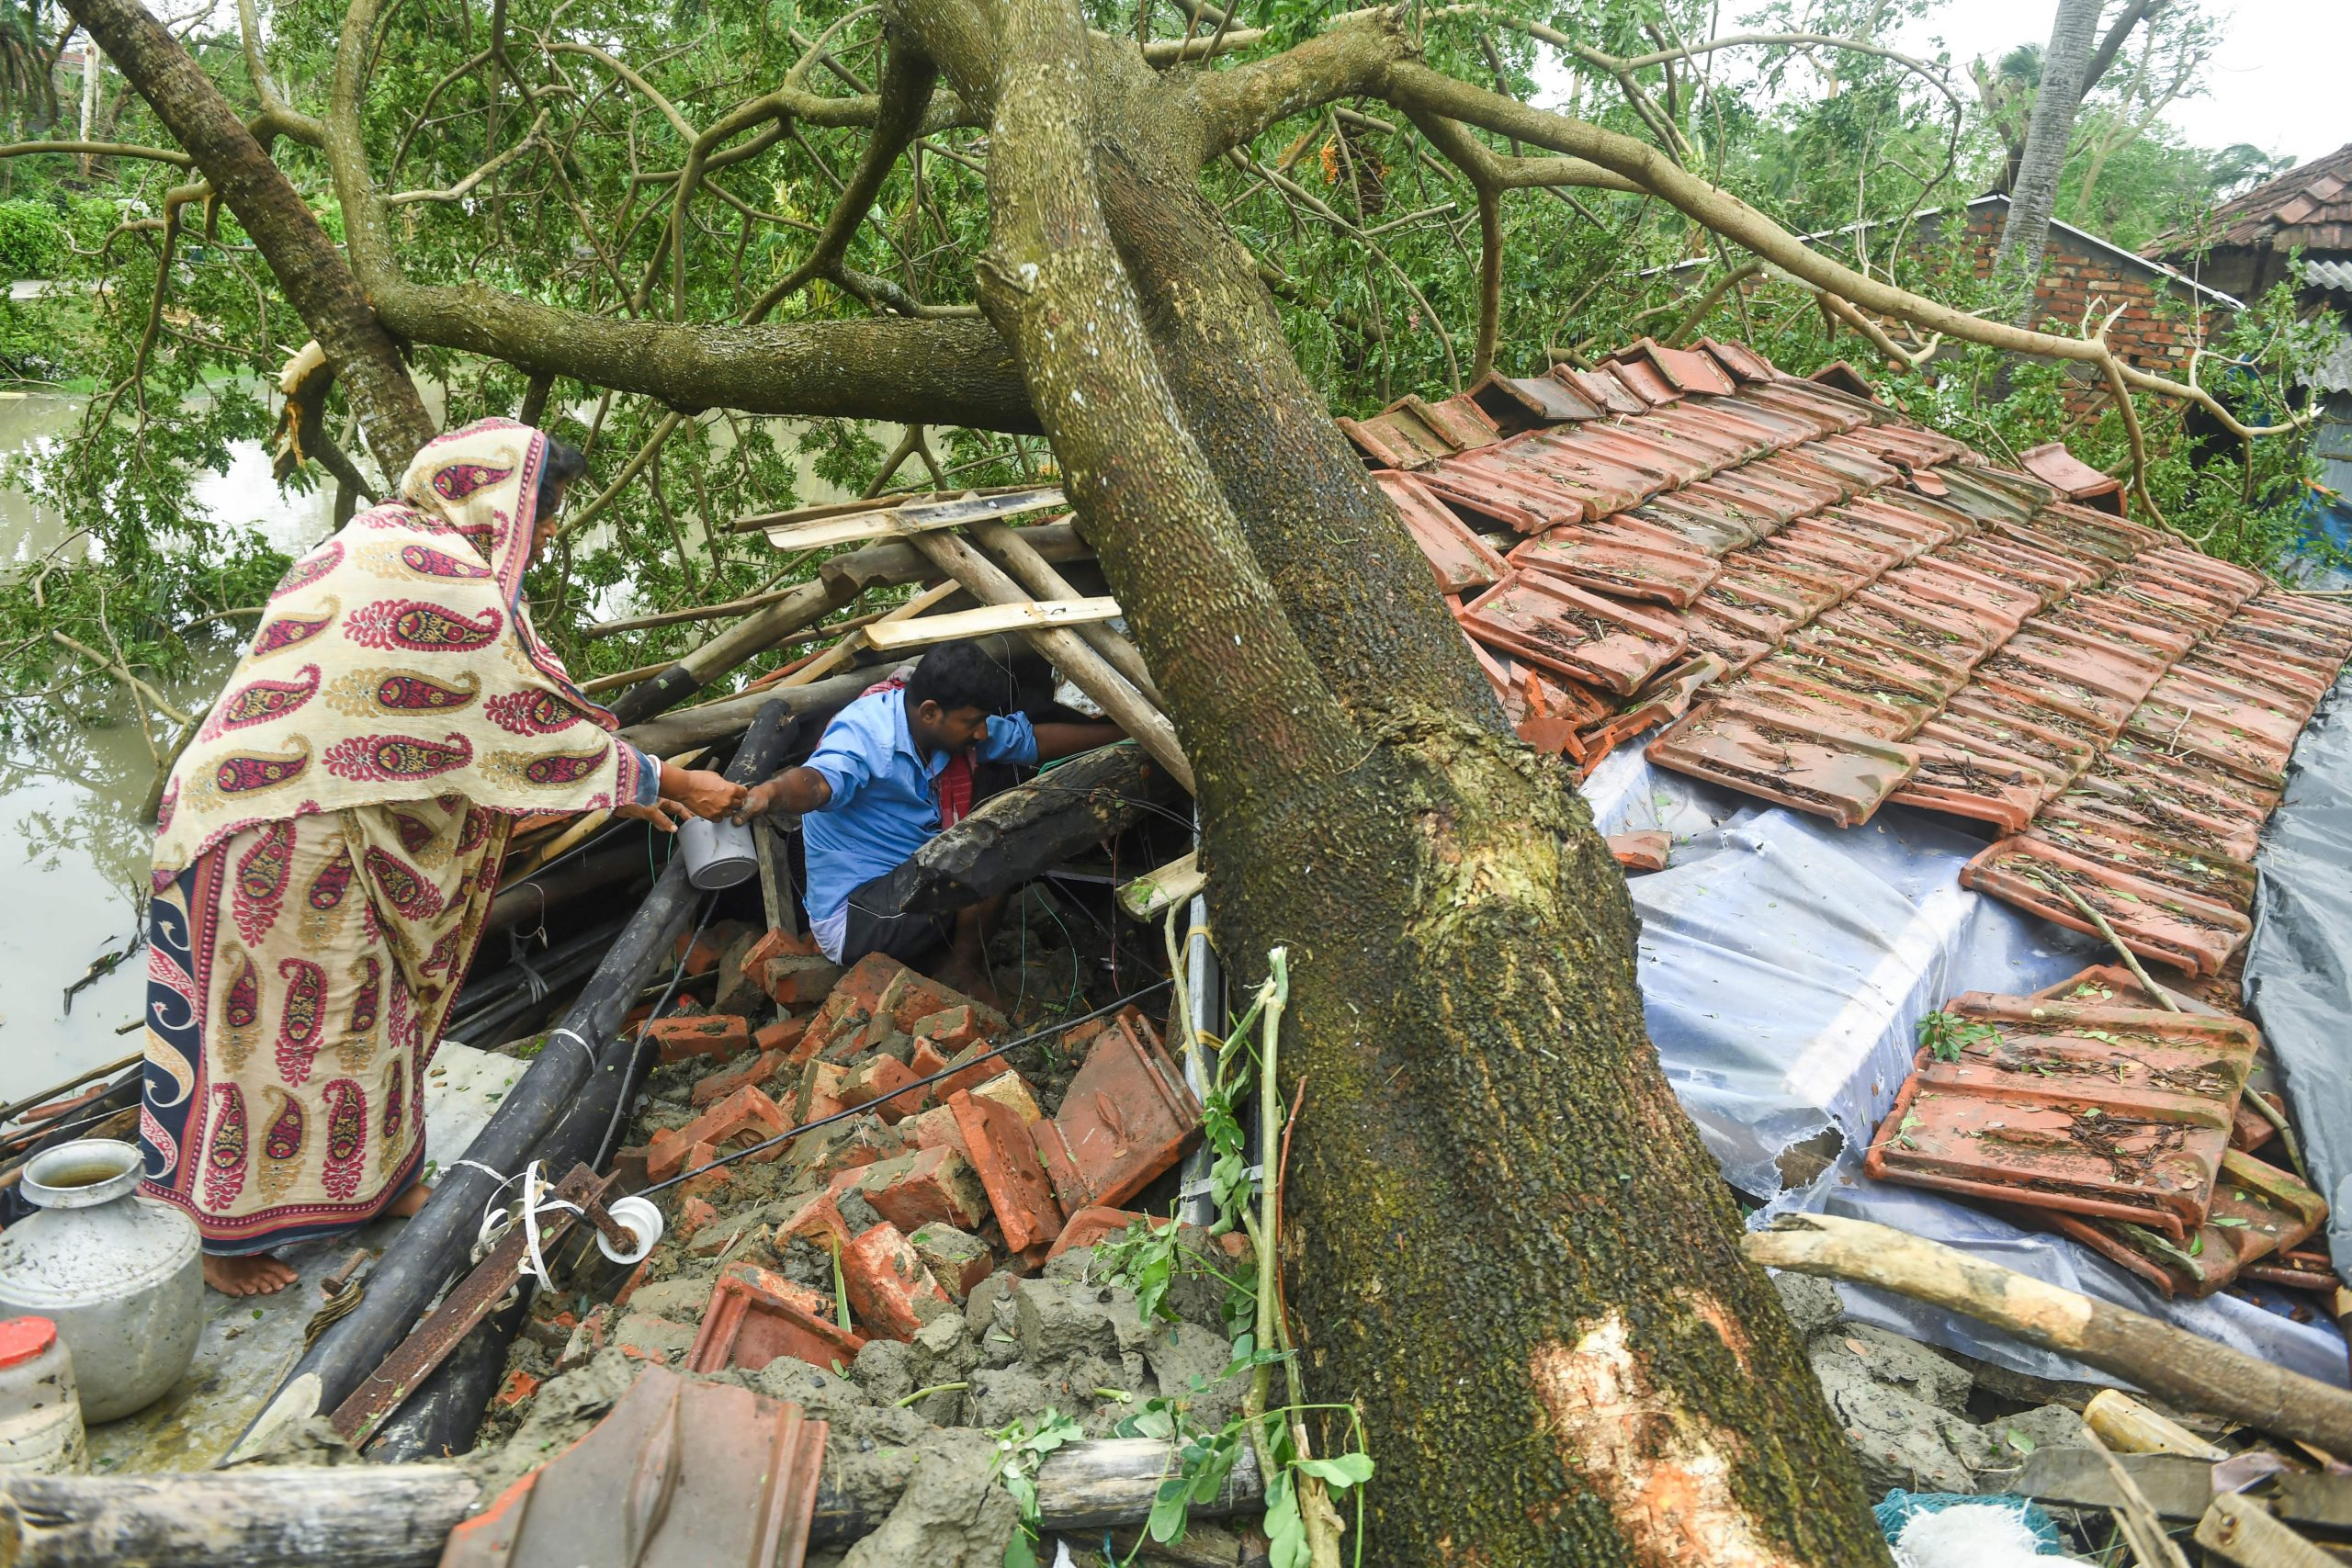 Villagers salvage items from their house damaged by cyclone Amphan in Midnapore, West Bengal, on May 21, 2020. - The strongest cyclone in decades slammed into Bangladesh and eastern India on May 20, sending water surging inland and leaving a trail of destruction as the death toll rose to at least nine. (Photo by Dibyangshu SARKAR / AFP) (Photo by DIBYANGSHU SARKAR/AFP via Getty Images)